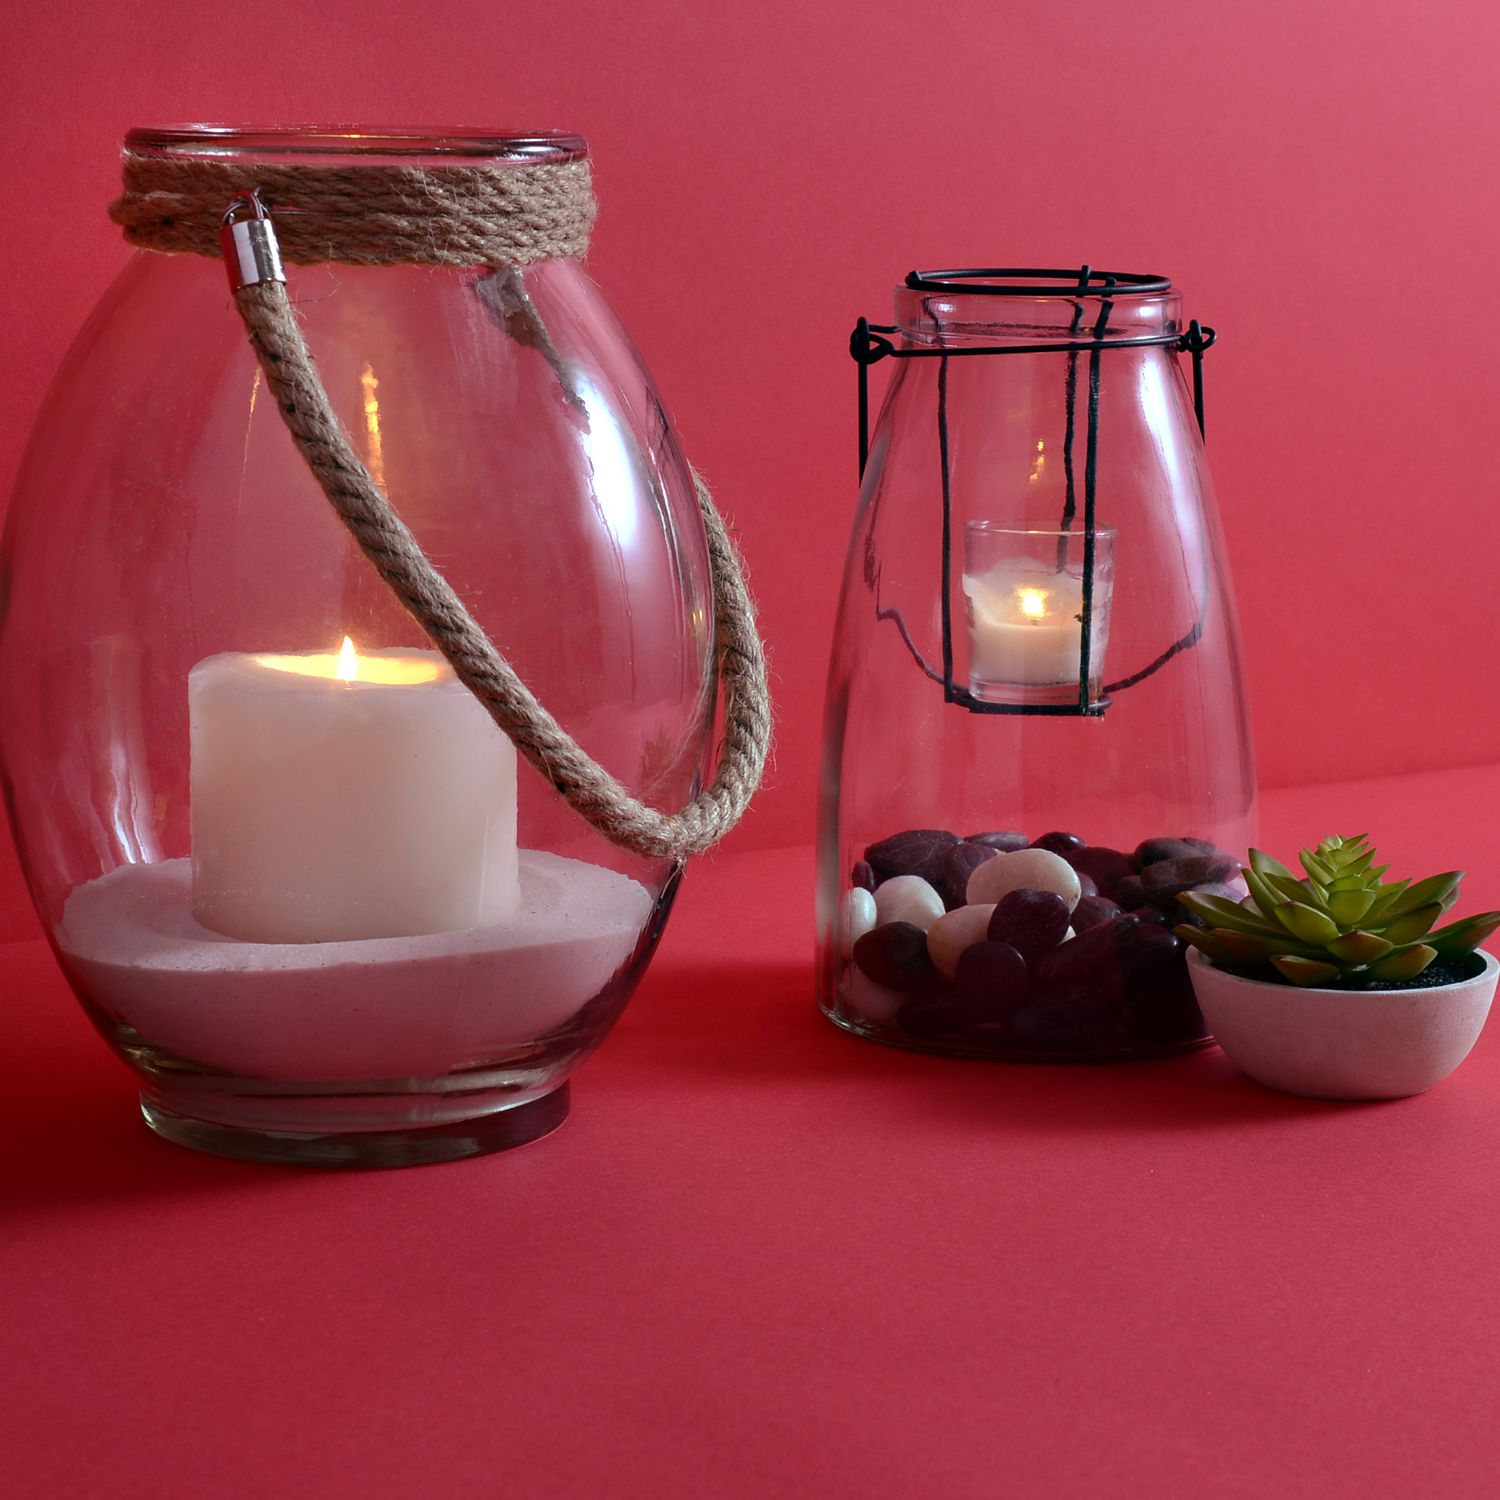 Set the mood with one of Kirkland's glass lanterns. Fill with greenery, sand, rocks or tea-candles and enjoy a relaxing evening.